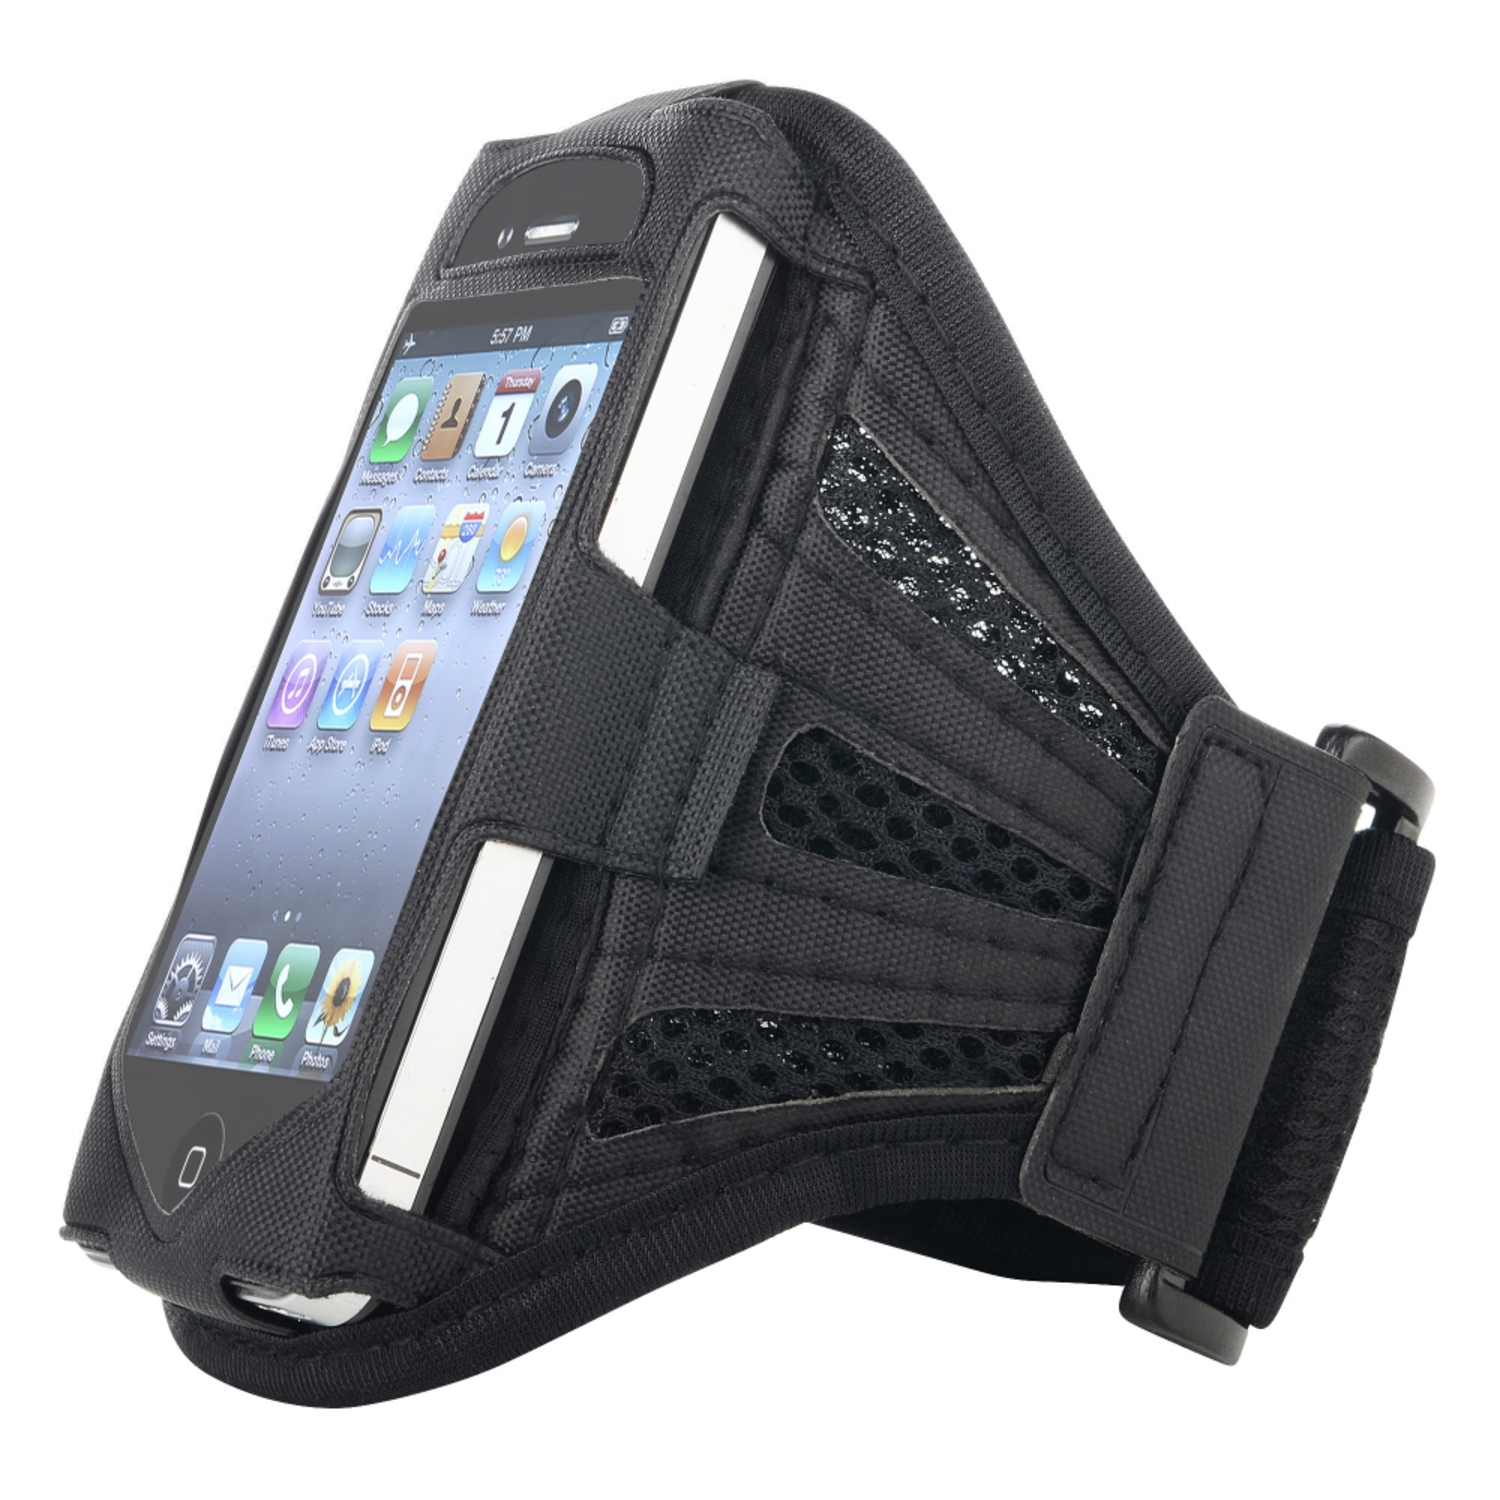 Insten Deluxe Armband For Apple iPhone 4 / 4S / 3G / 3GS / iPod touch, Black / Black